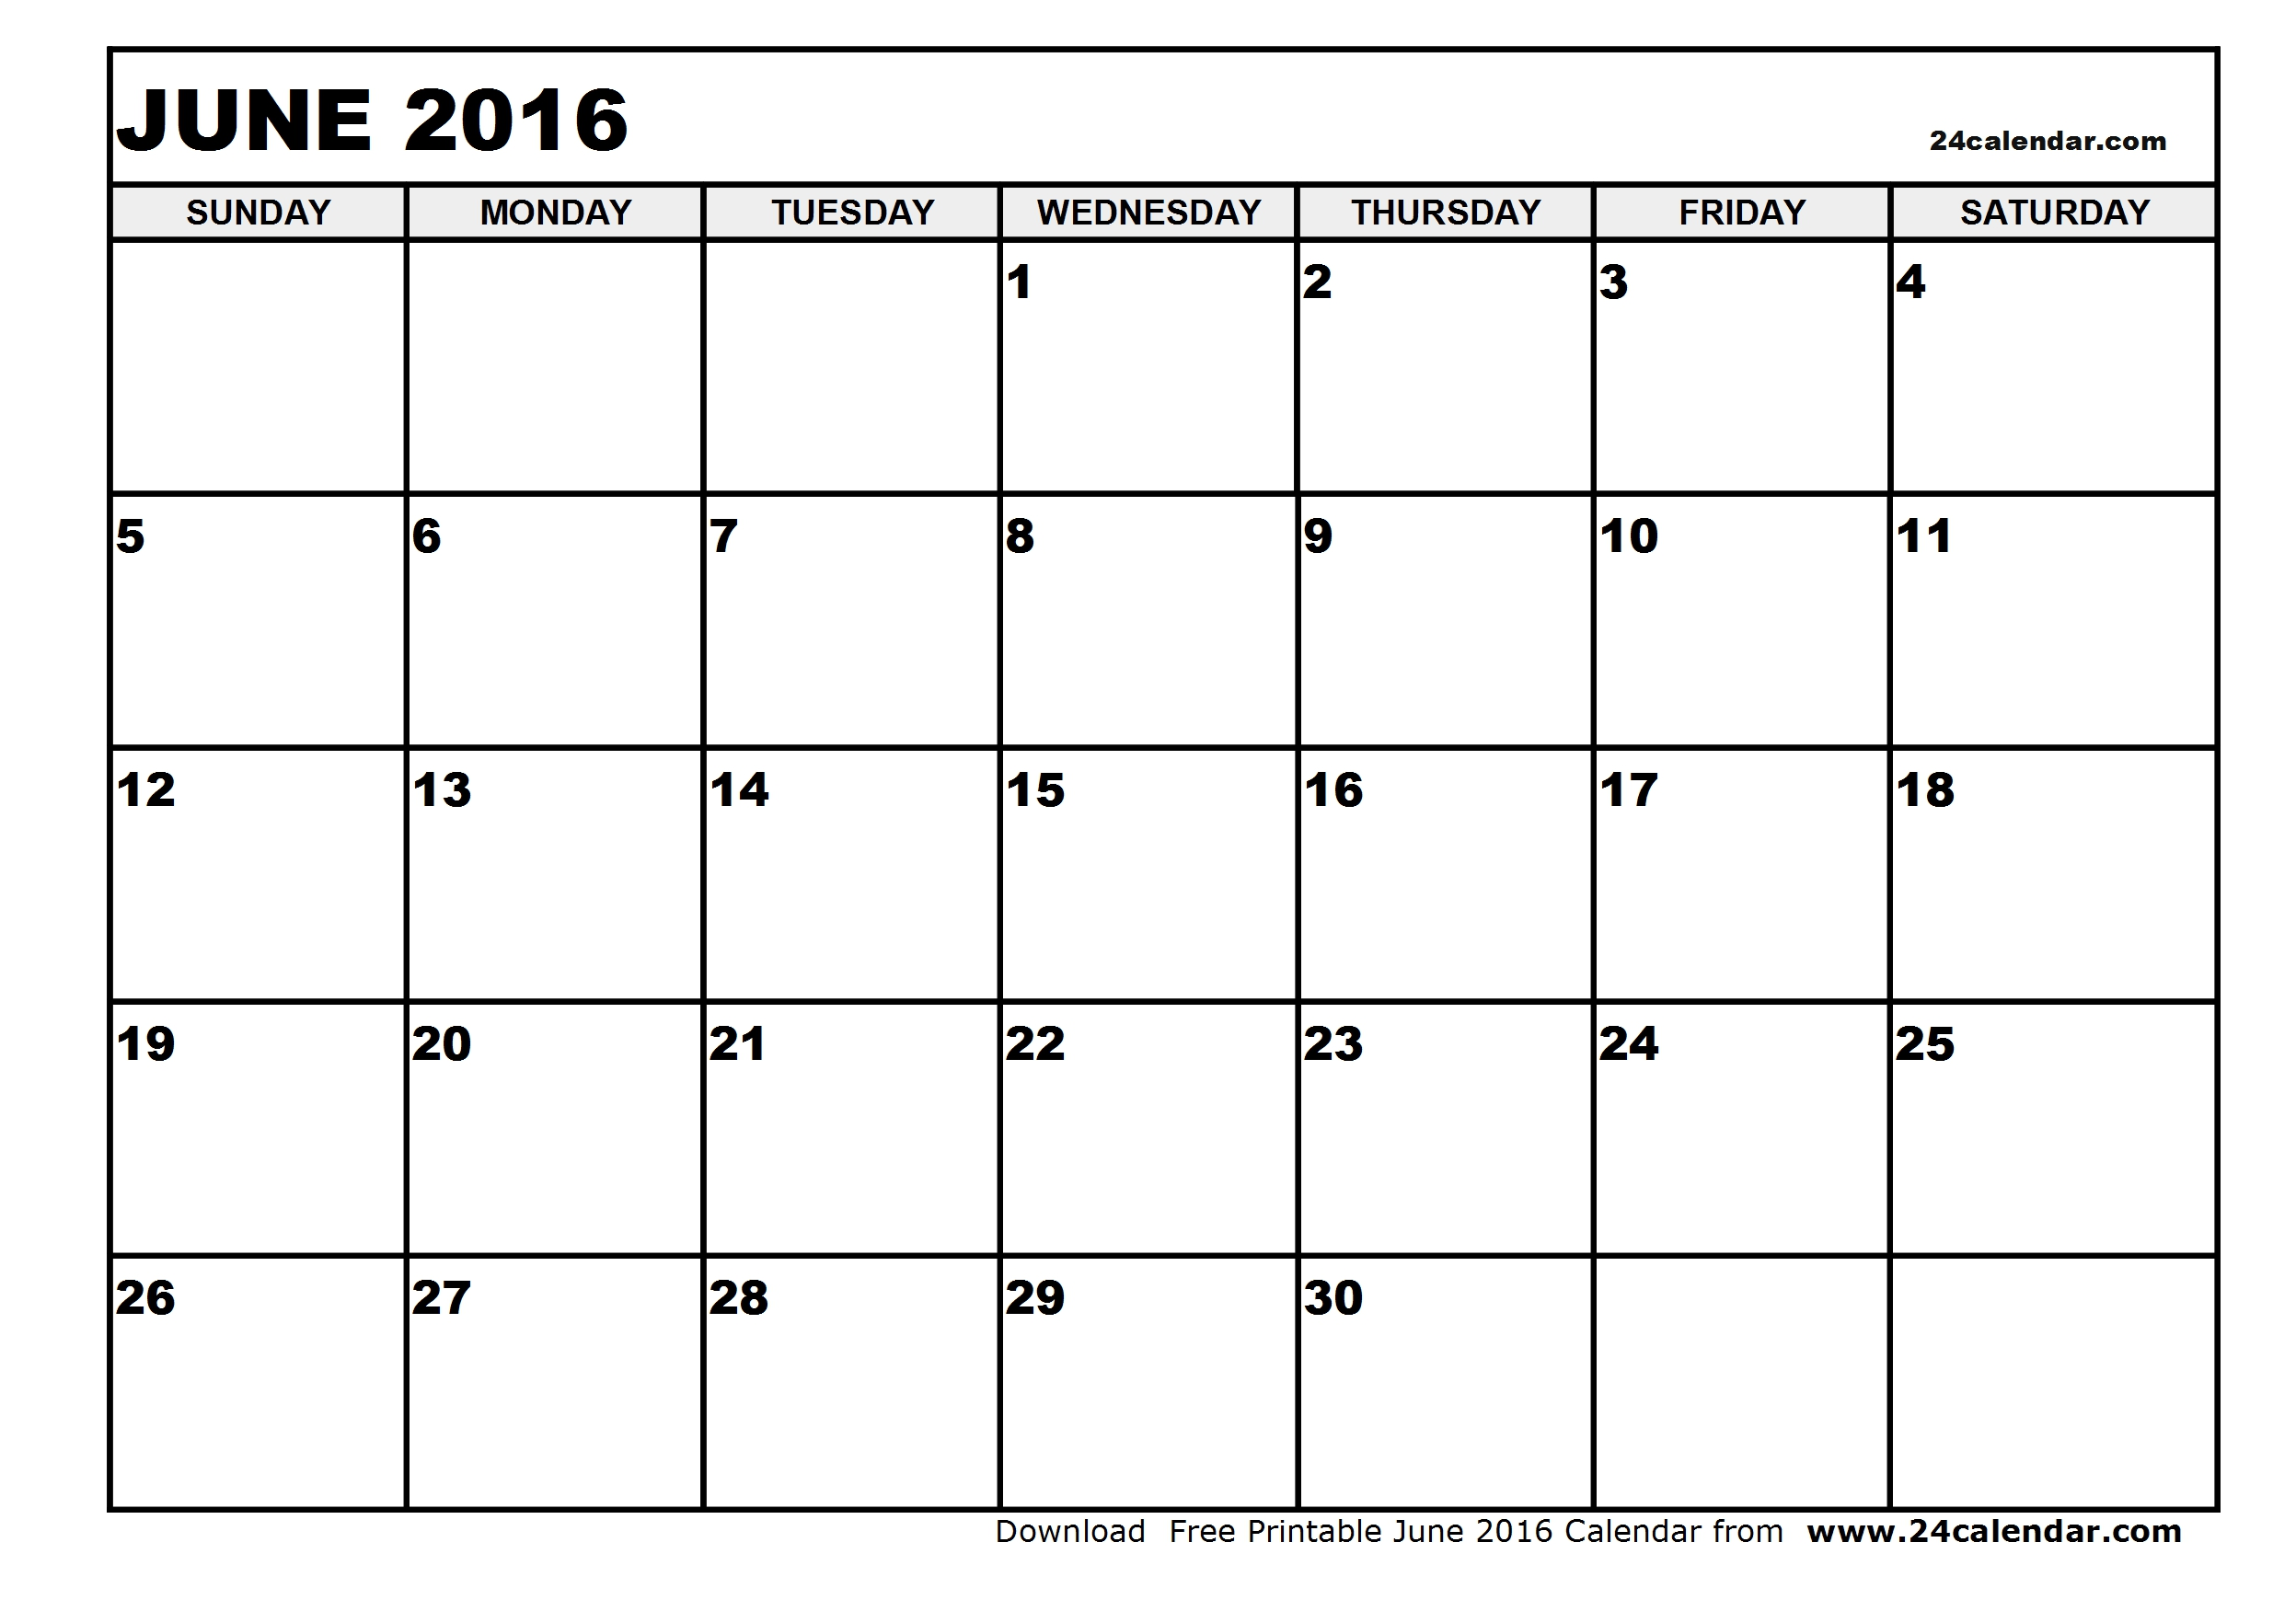 Blank june calendar clipart graphic black and white June 2016 calendar clipart - ClipartFest graphic black and white